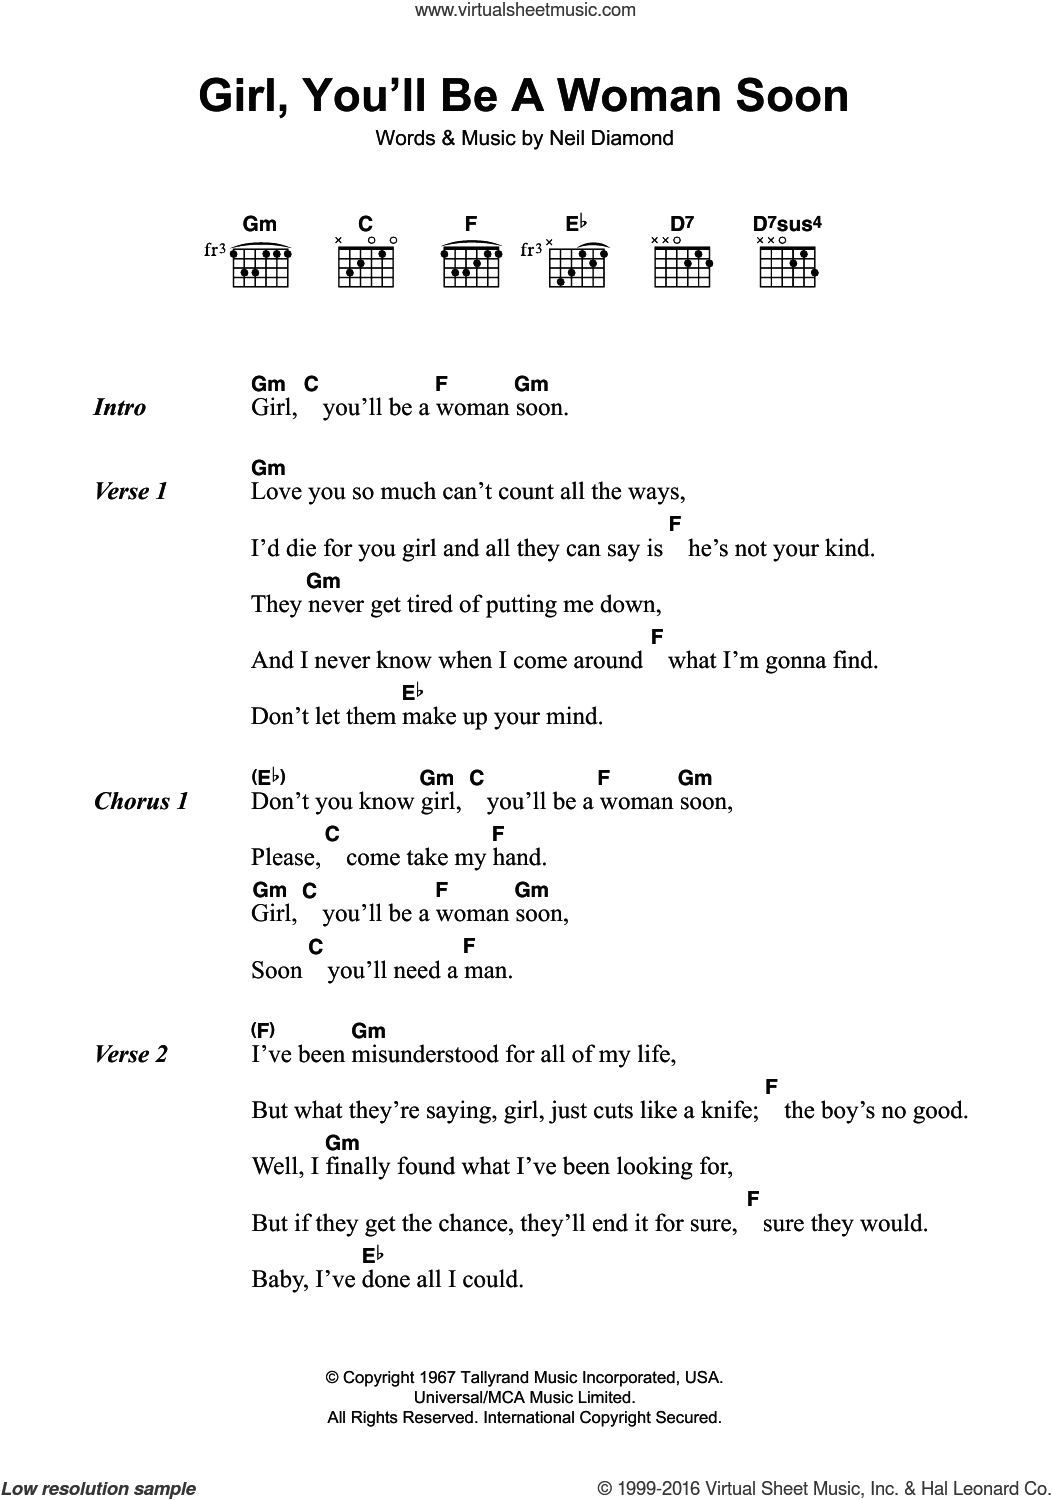 Girl, You'll Be A Woman Soon sheet music for guitar (chords) by Neil Diamond, intermediate skill level